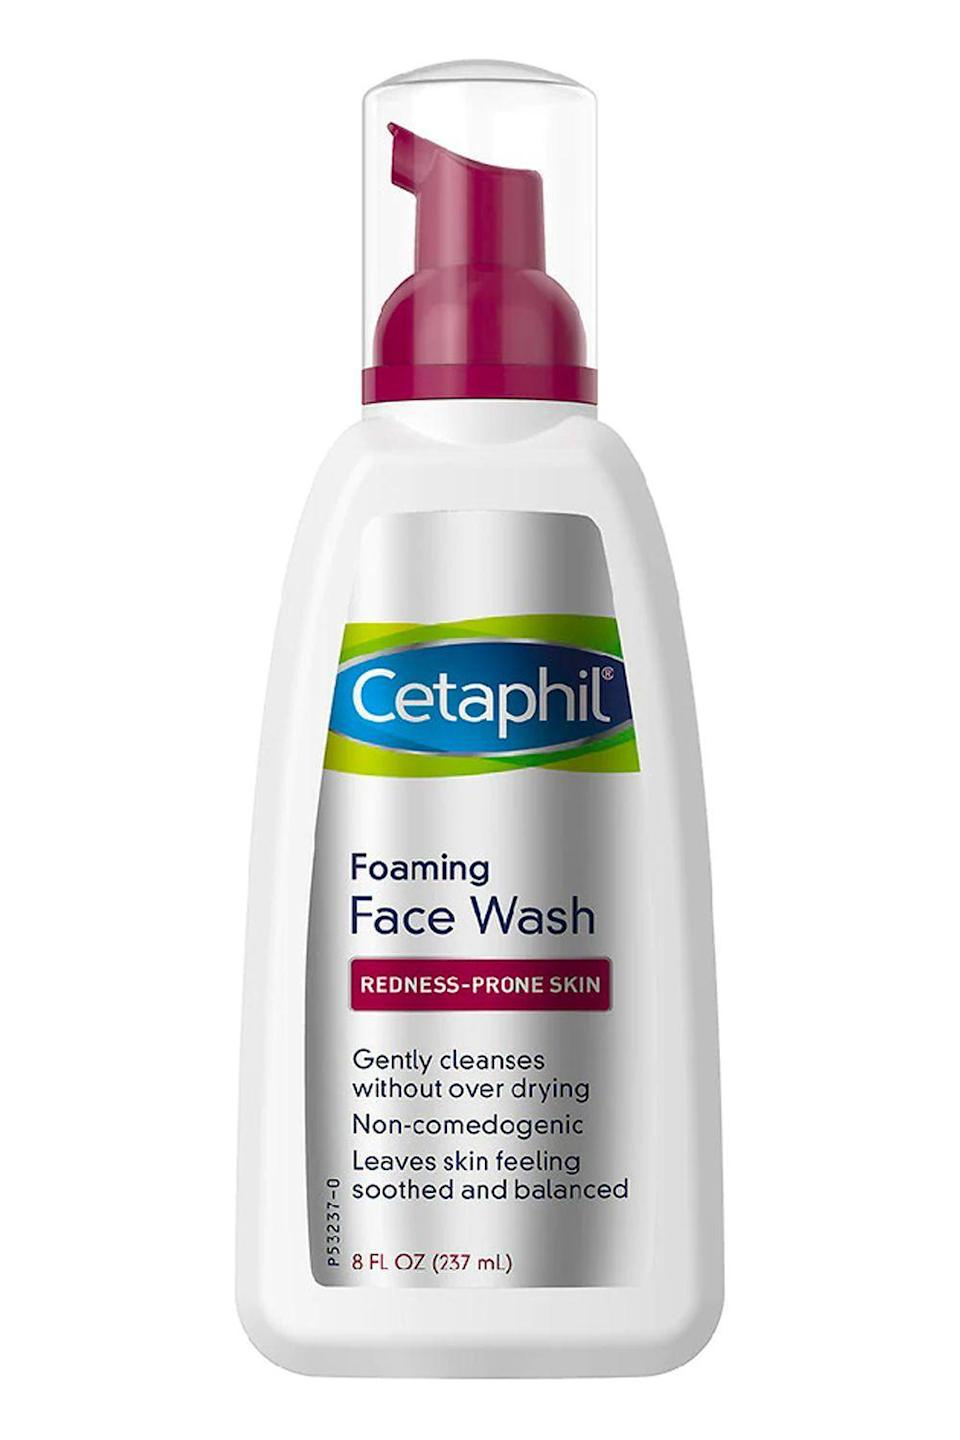 """<p><strong>Cetaphil</strong></p><p>amazon.com</p><p><strong>$10.49</strong></p><p><a href=""""https://www.amazon.com/dp/B01MG4OX6Q?tag=syn-yahoo-20&ascsubtag=%5Bartid%7C10049.g.35089763%5Bsrc%7Cyahoo-us"""" rel=""""nofollow noopener"""" target=""""_blank"""" data-ylk=""""slk:Shop Now"""" class=""""link rapid-noclick-resp"""">Shop Now</a></p><p>Legit every dermatologist recommends this drugstore <a href=""""https://www.cosmopolitan.com/style-beauty/beauty/a25325527/best-acne-face-wash/"""" rel=""""nofollow noopener"""" target=""""_blank"""" data-ylk=""""slk:face wash"""" class=""""link rapid-noclick-resp"""">face wash</a> to patients with rosacea (or just anyone with sensitive skin in general). The <strong>mild formula gets rid of dirt, makeup, and excess oil </strong>while minimizing redness and irritation with soothing allantoin. </p>"""